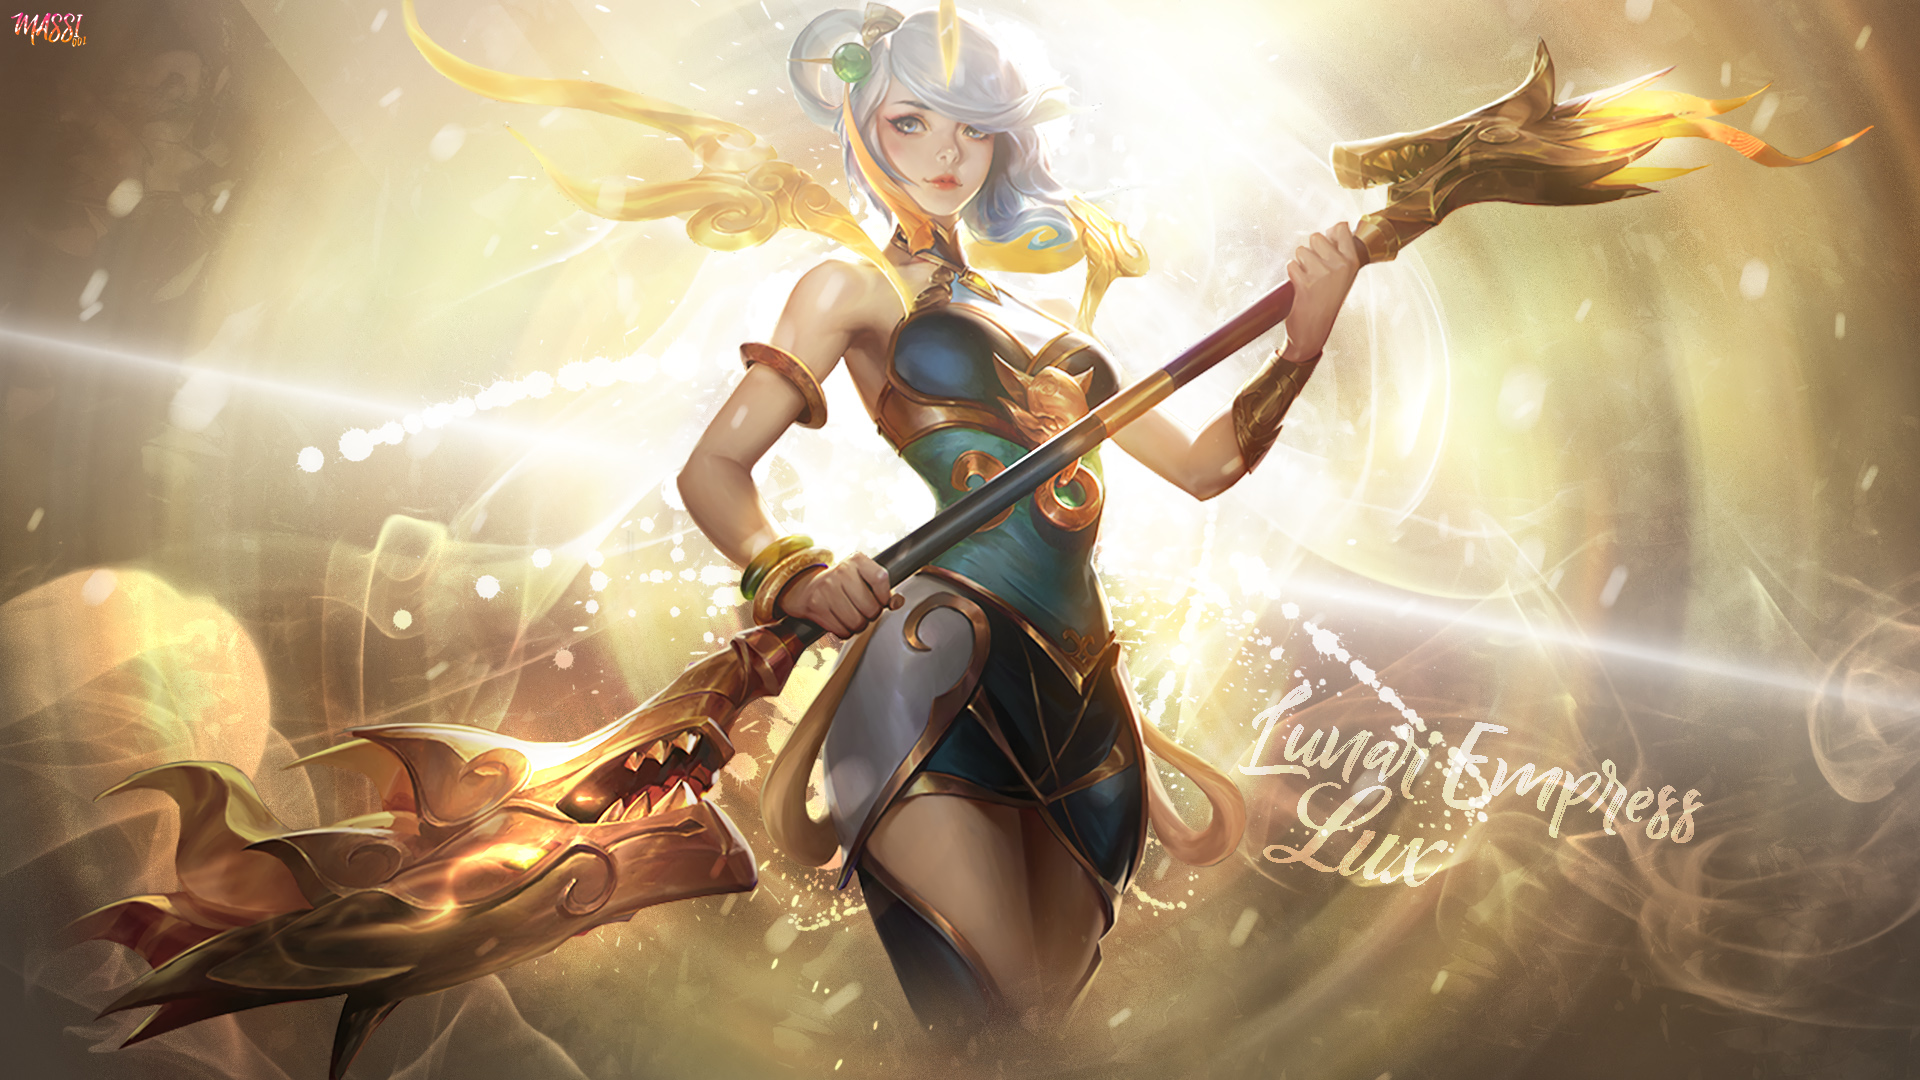 Lux Wallpapers Lunar Empress Lux 314687 Hd Wallpaper